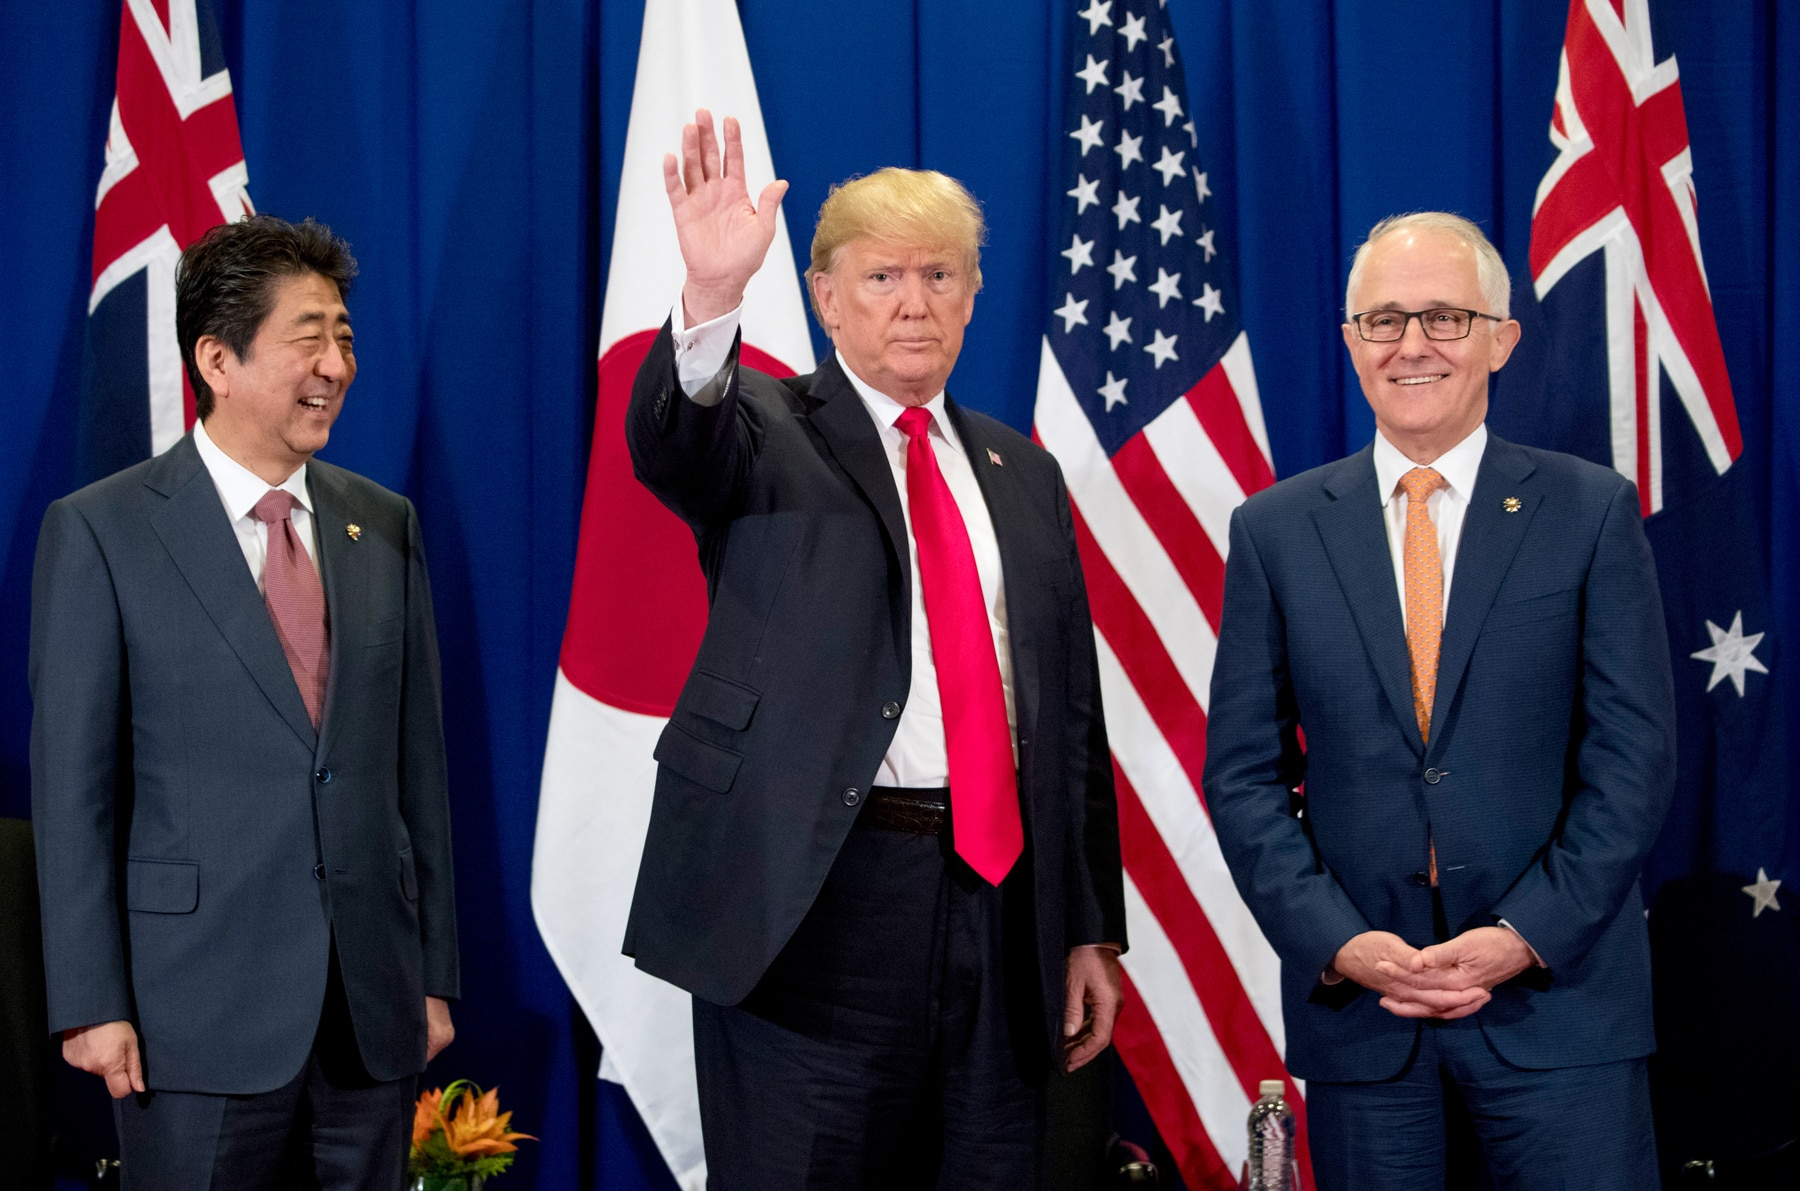 President Trump (center) waving, with Japanese Prime Minister Shinzō Abe, left, and Australian Prime Minister Malcolm Turnbull standing beside him (© AP Images)